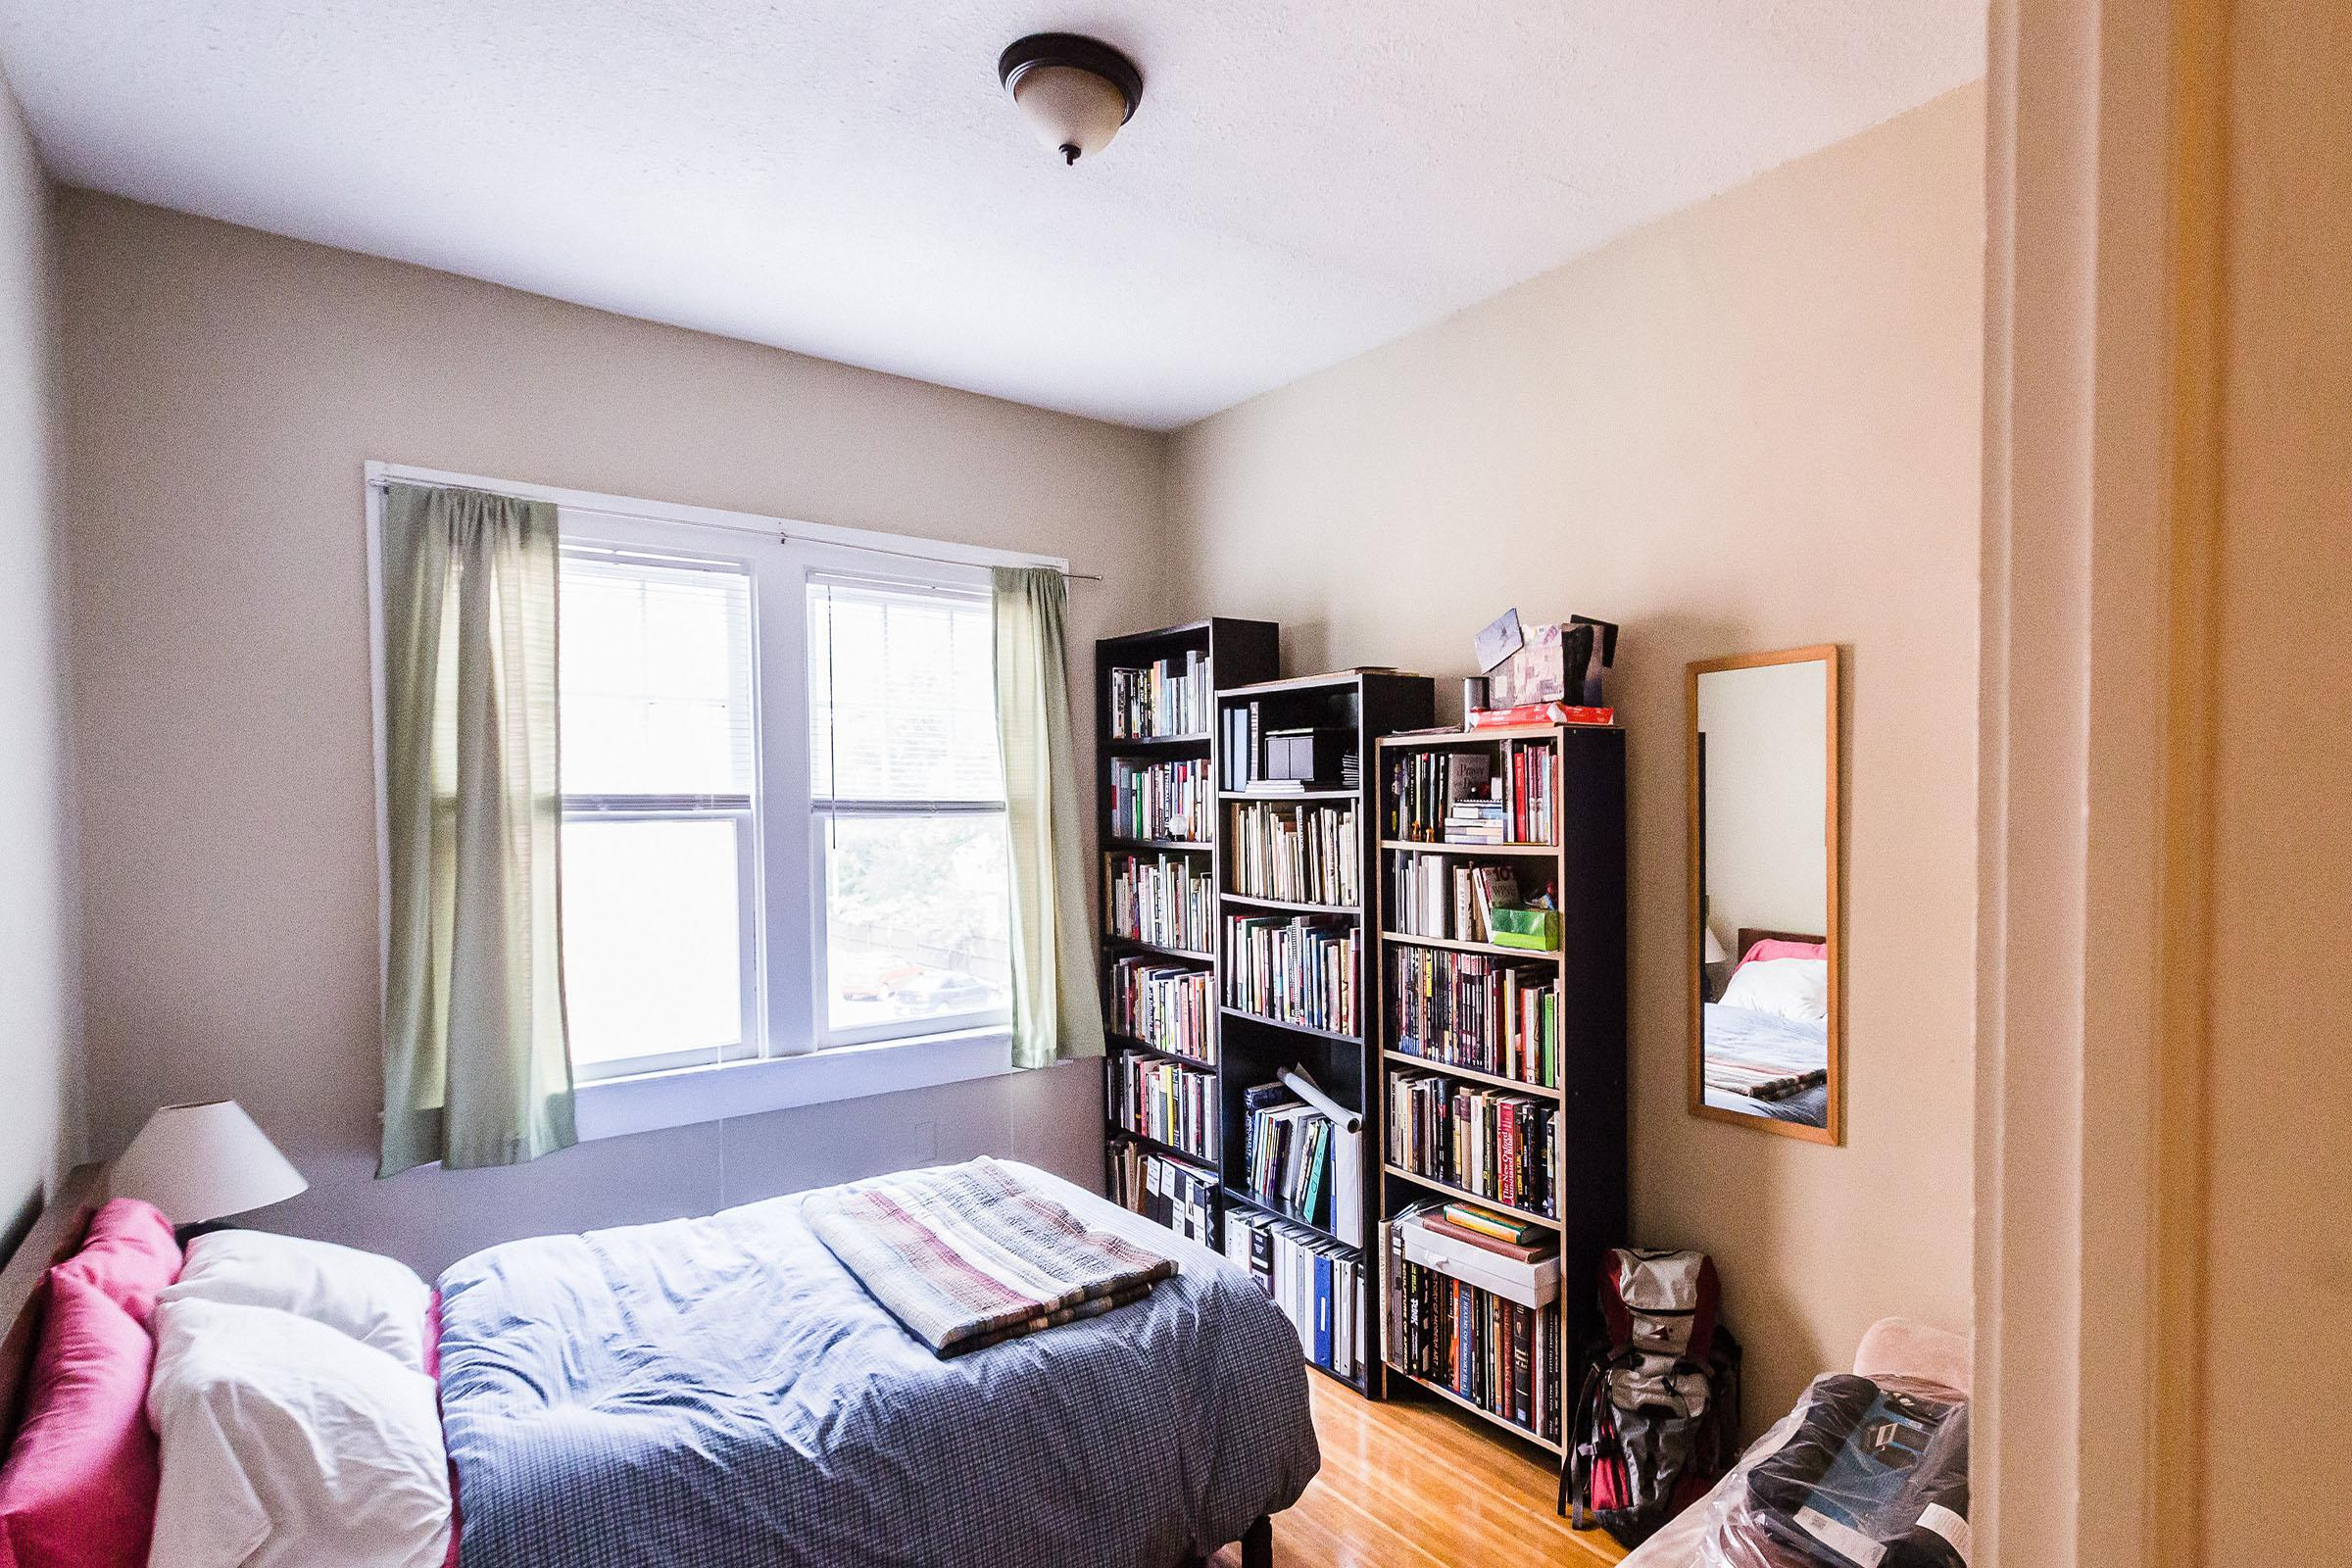 a bedroom with a book shelf